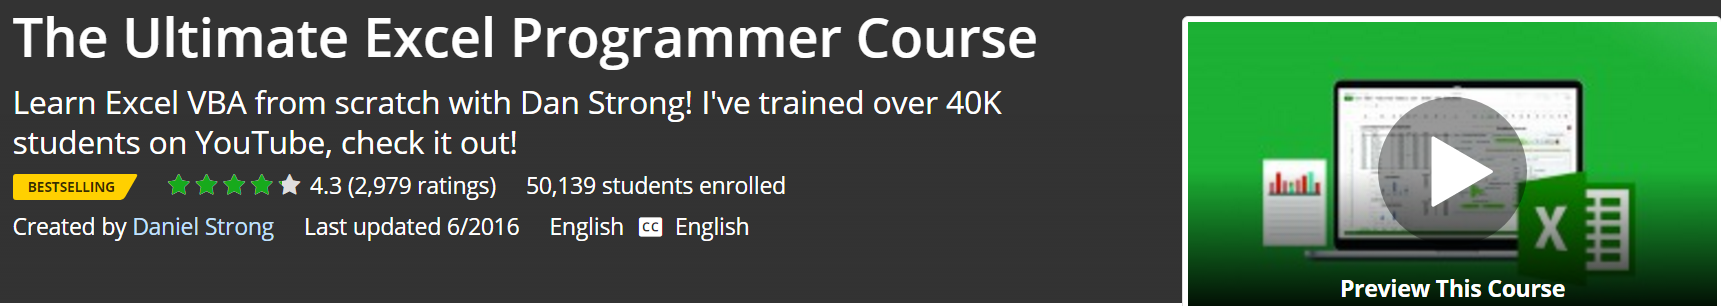 The Ultimate Excel Programmer Course